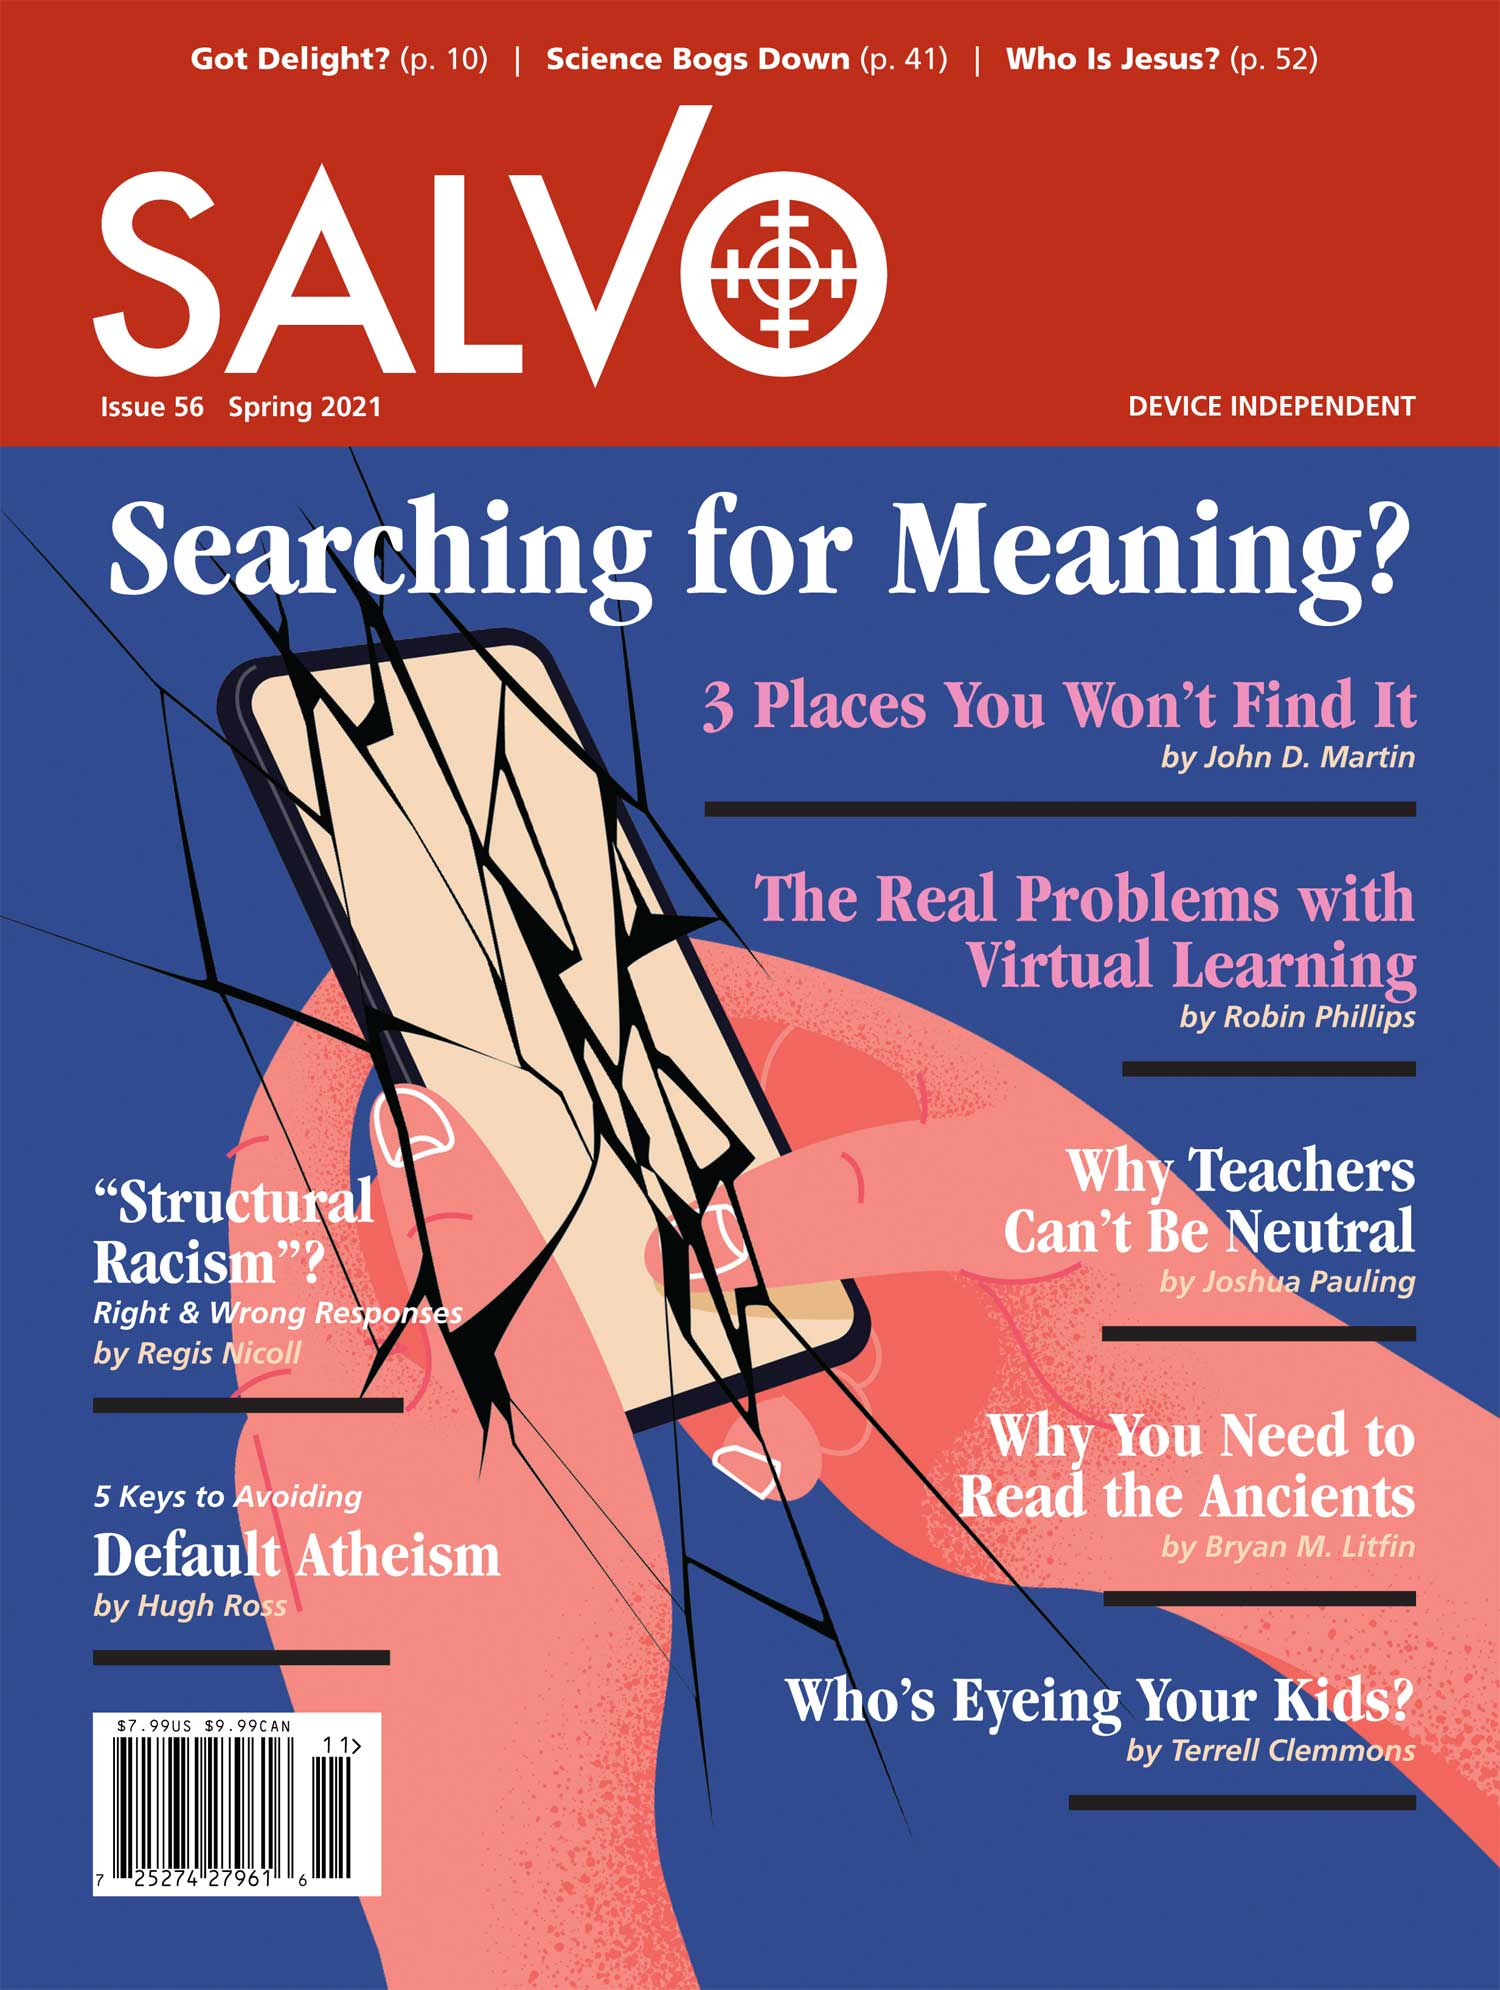 Current Issue Cover of Salvo Magazine